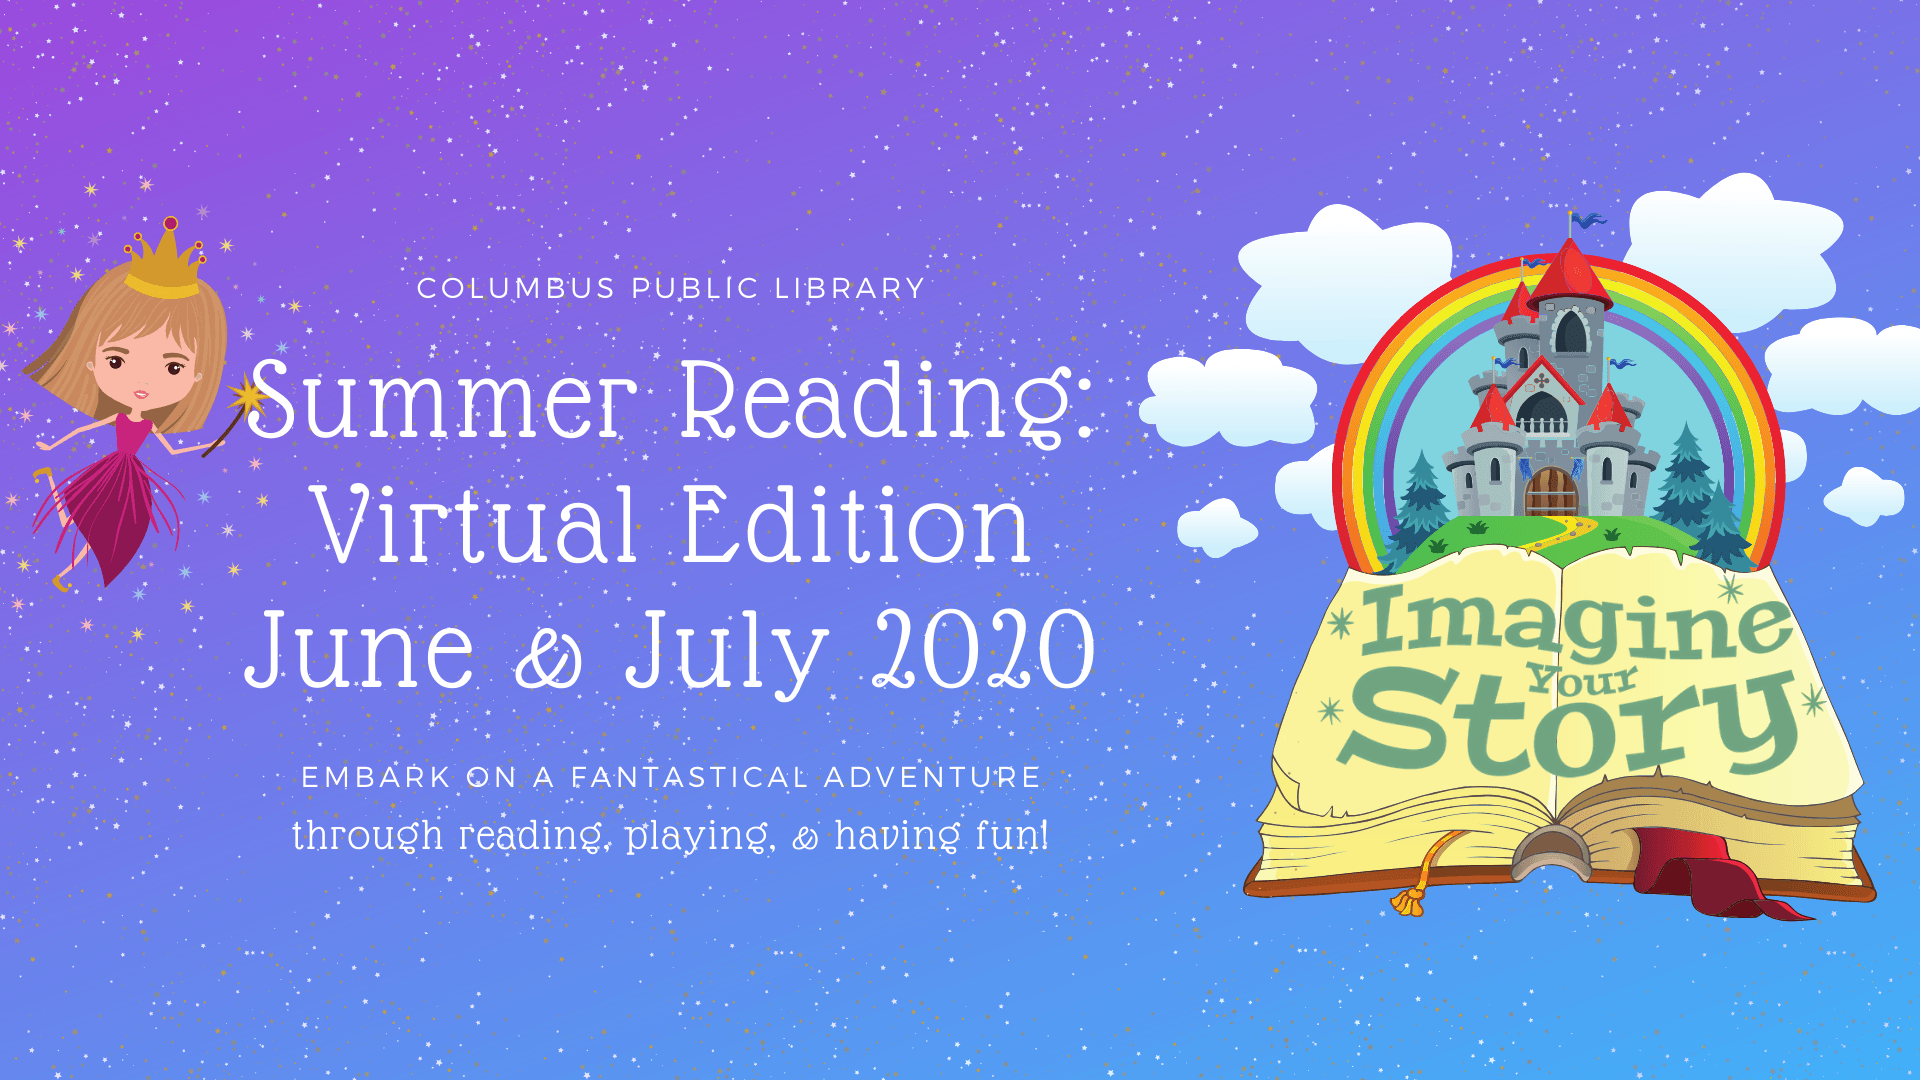 Summer Reading Promotion